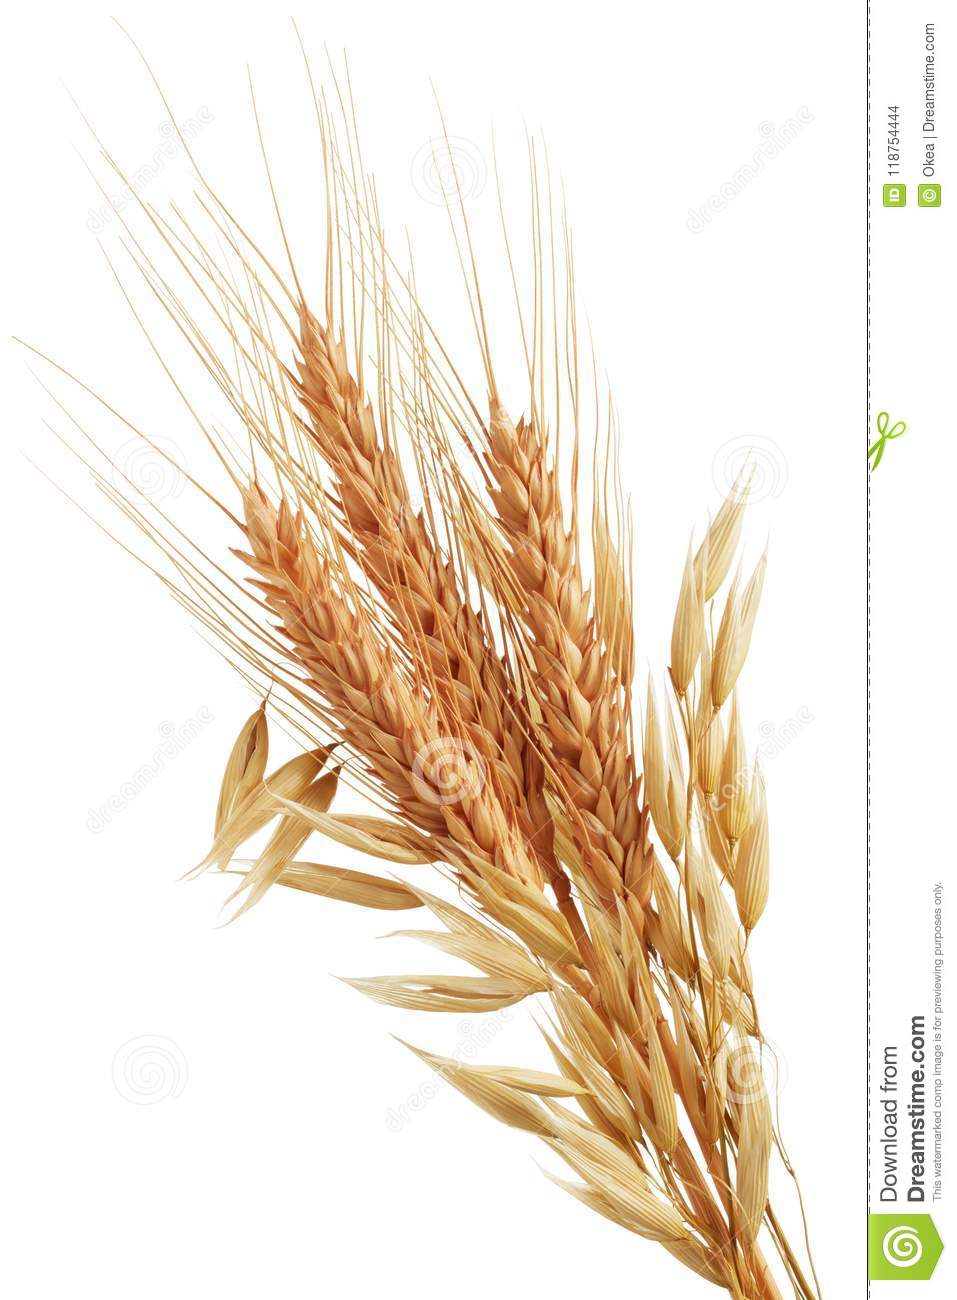 Download Oat plants and wheat ears stock photo. Image of plant - 118754444